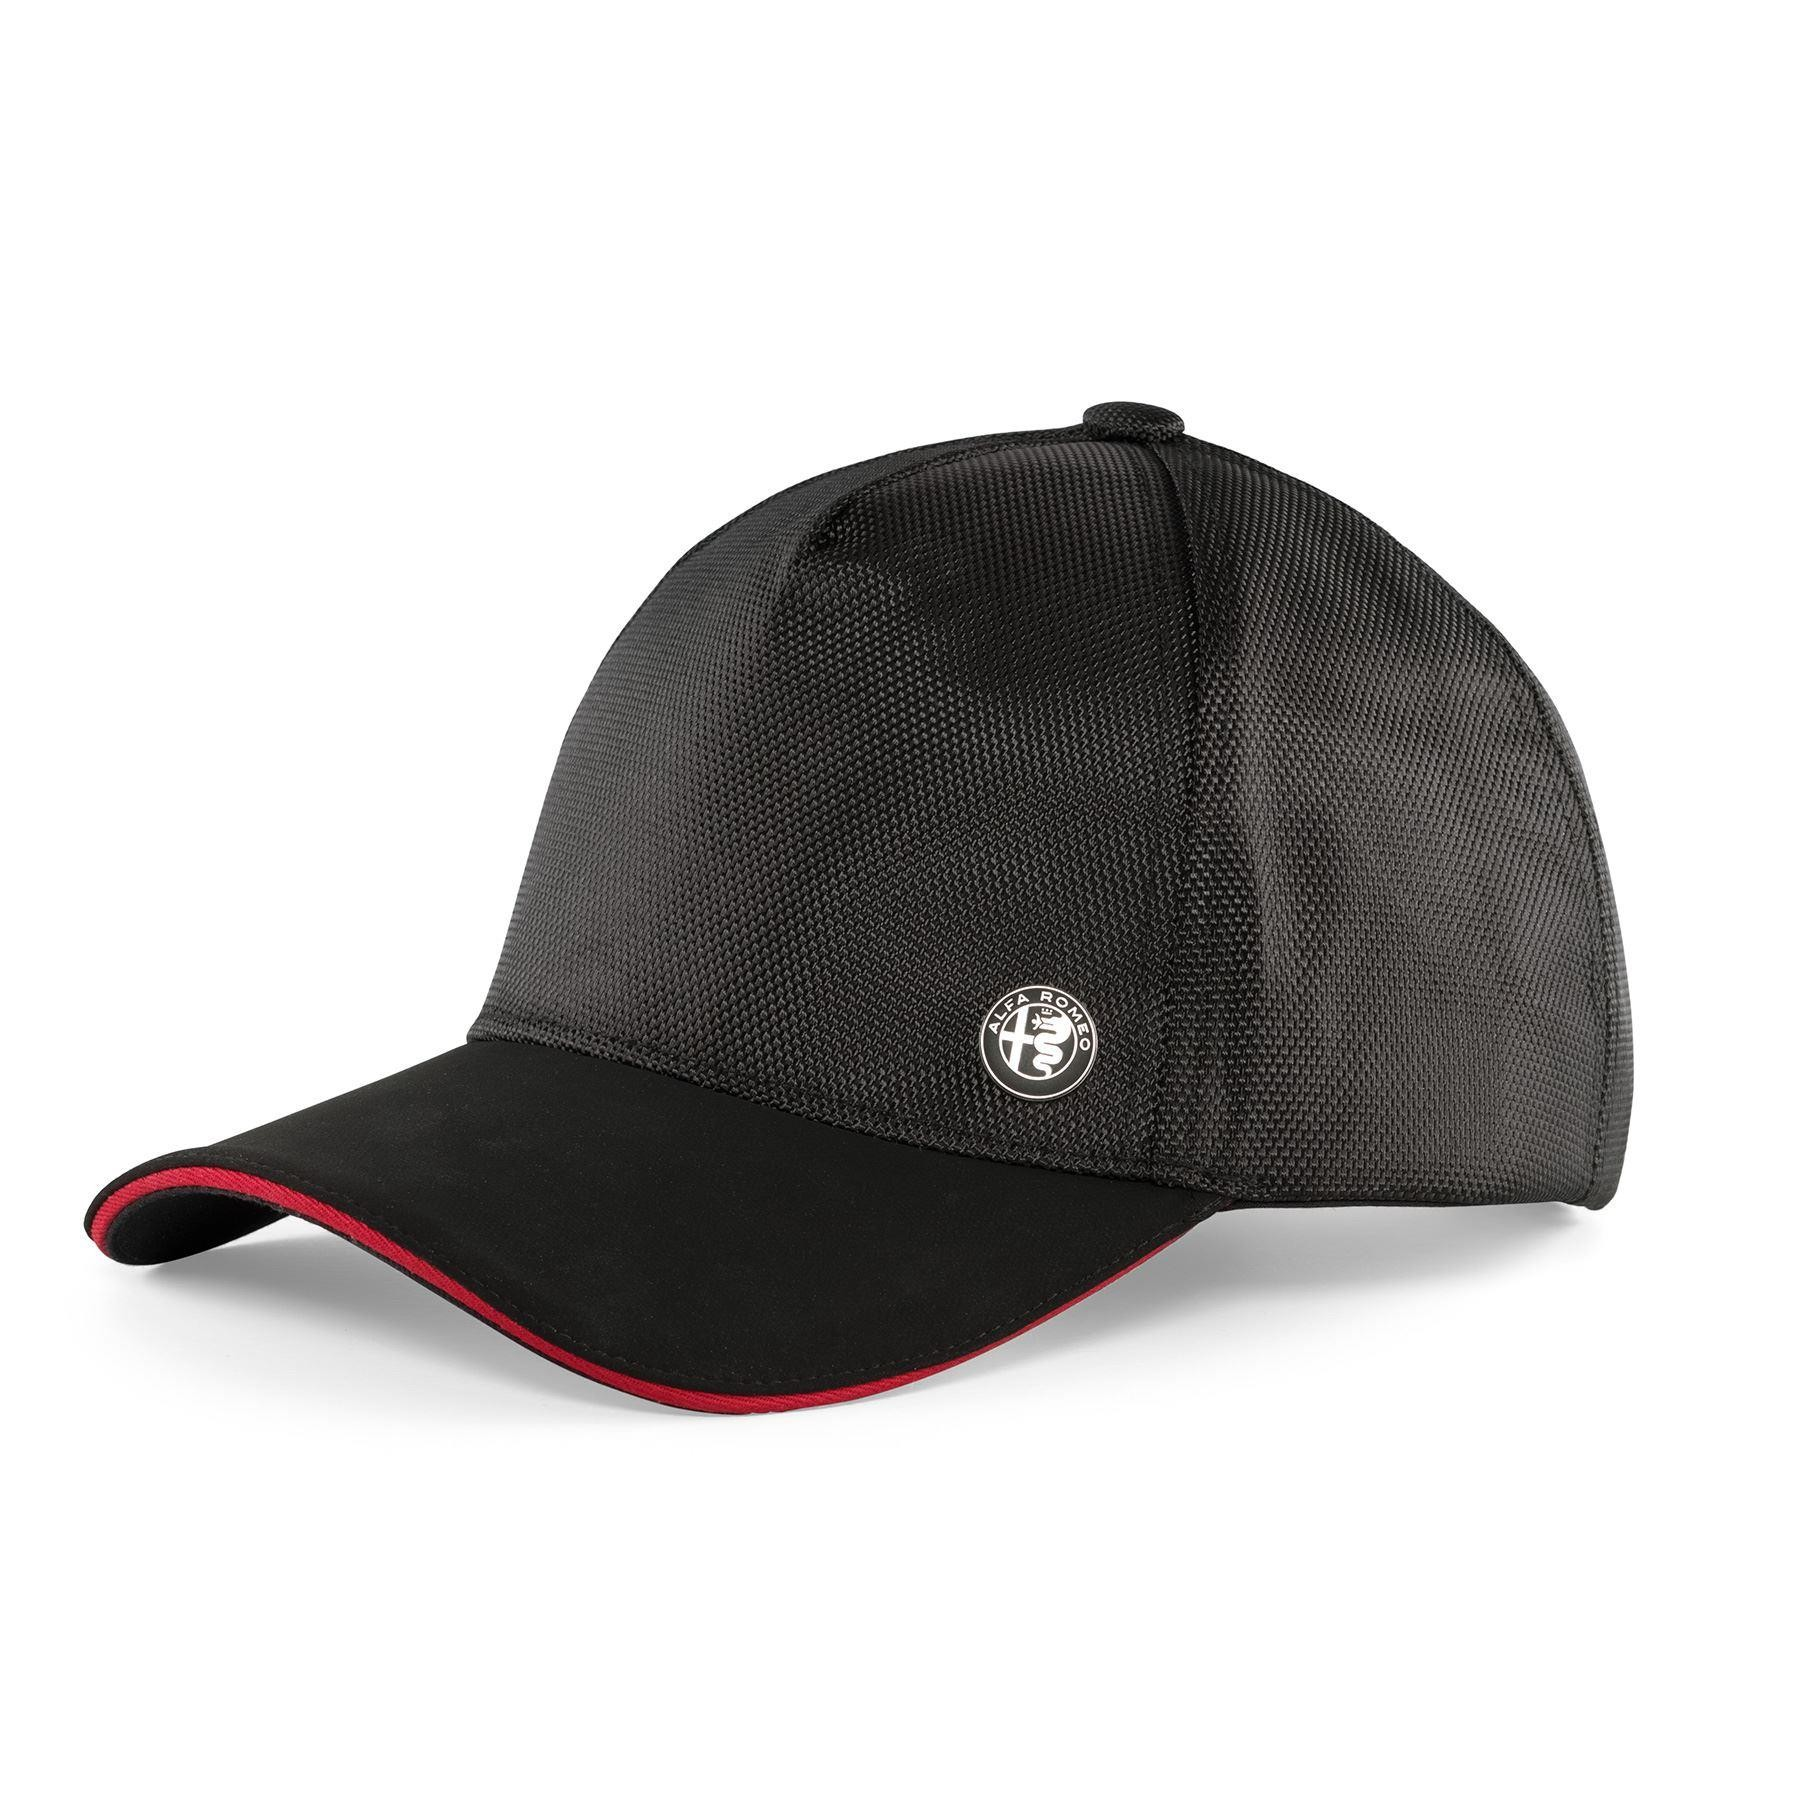 Genuine Alfa Black Technical Cap